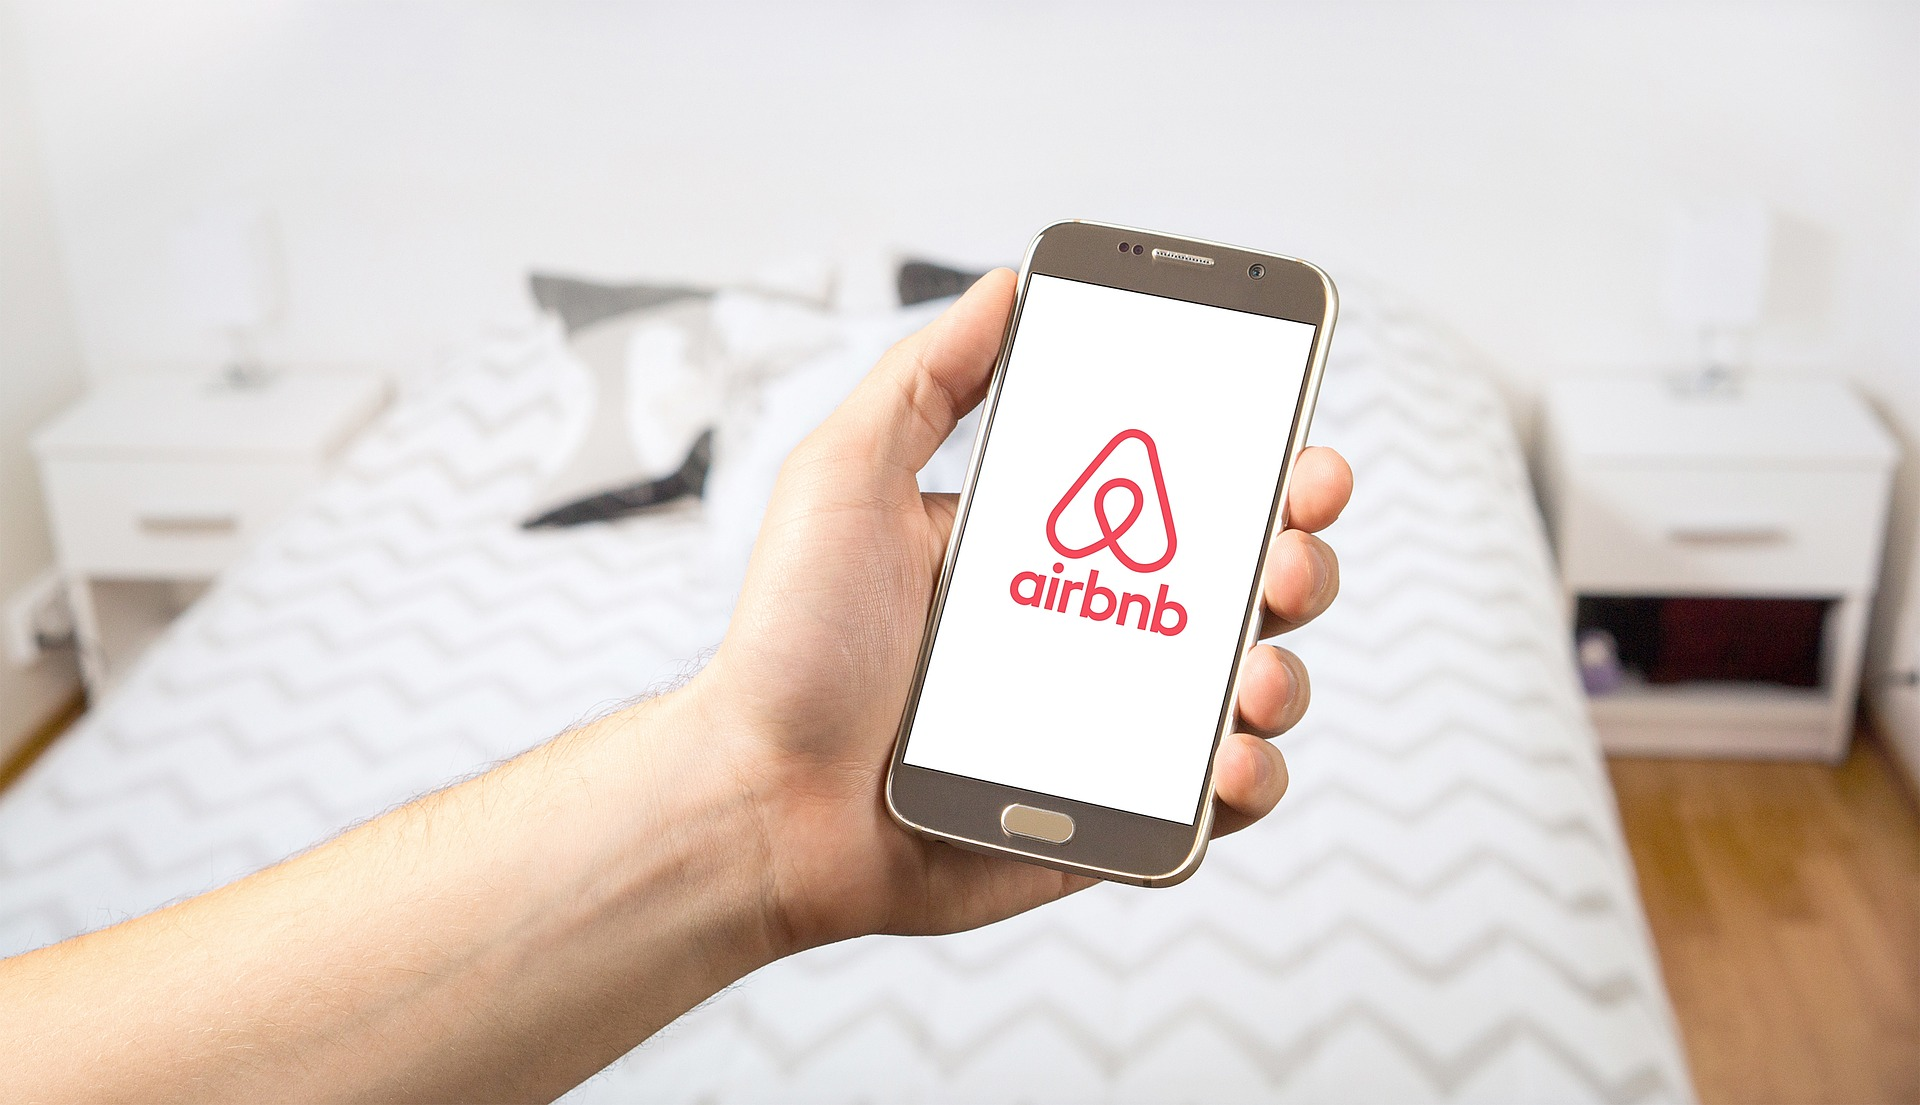 Nowadays we see the widespread use of service applications such as Airbnb- Pixabay